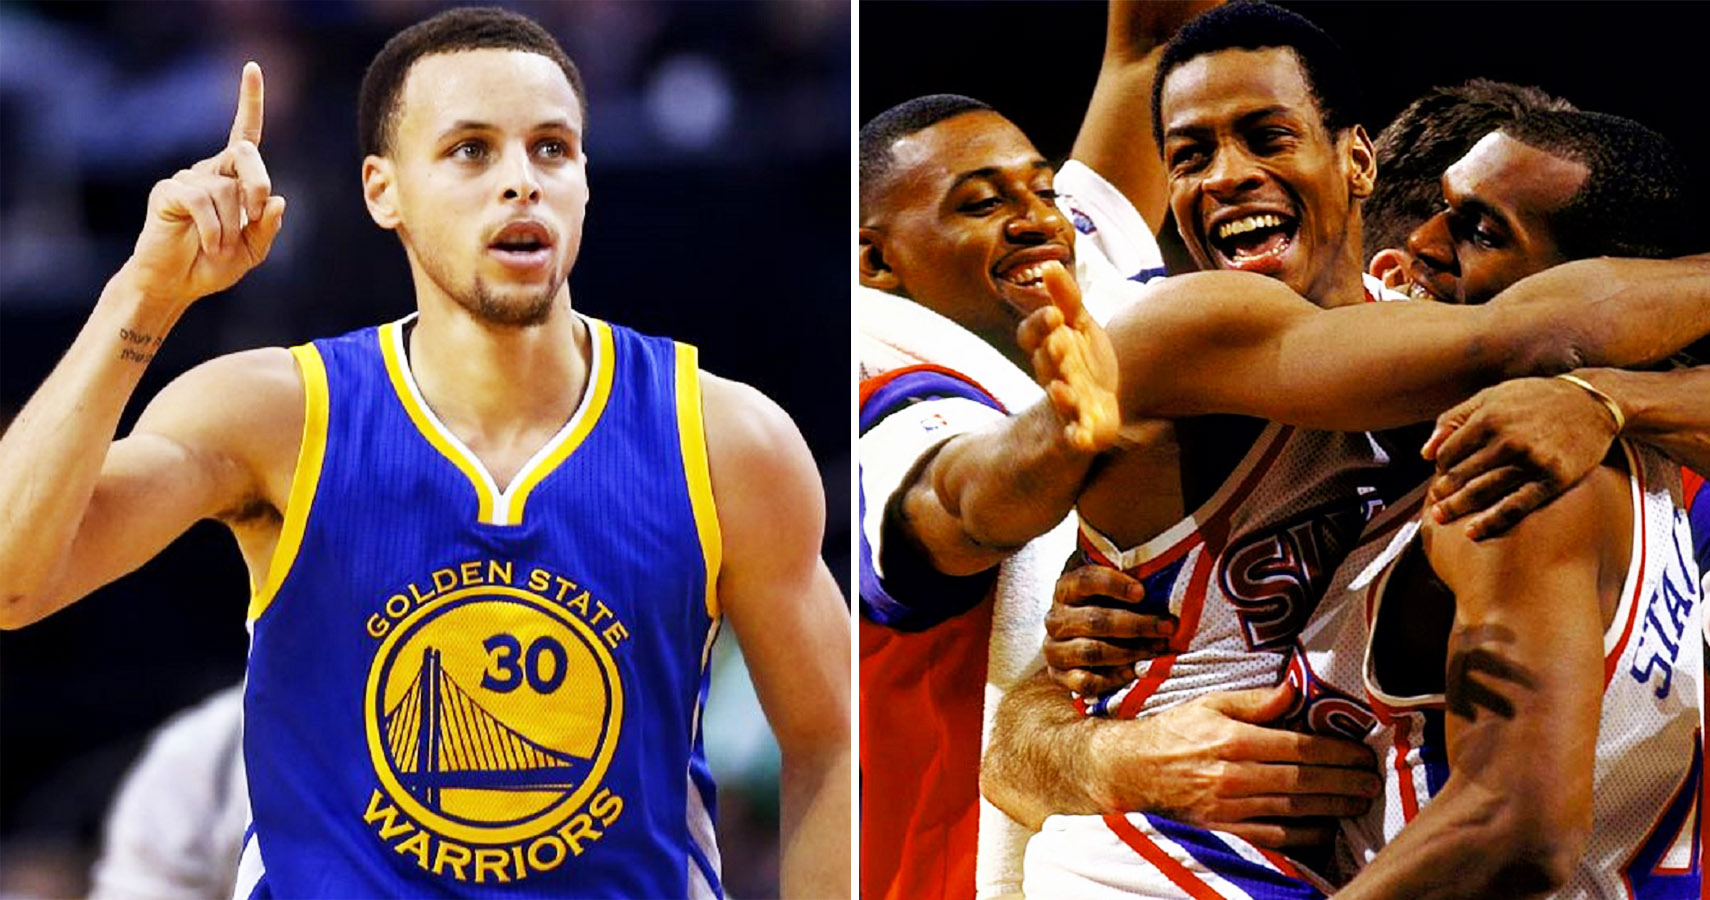 Top 15 Basketball Records That Will Never Be Broken